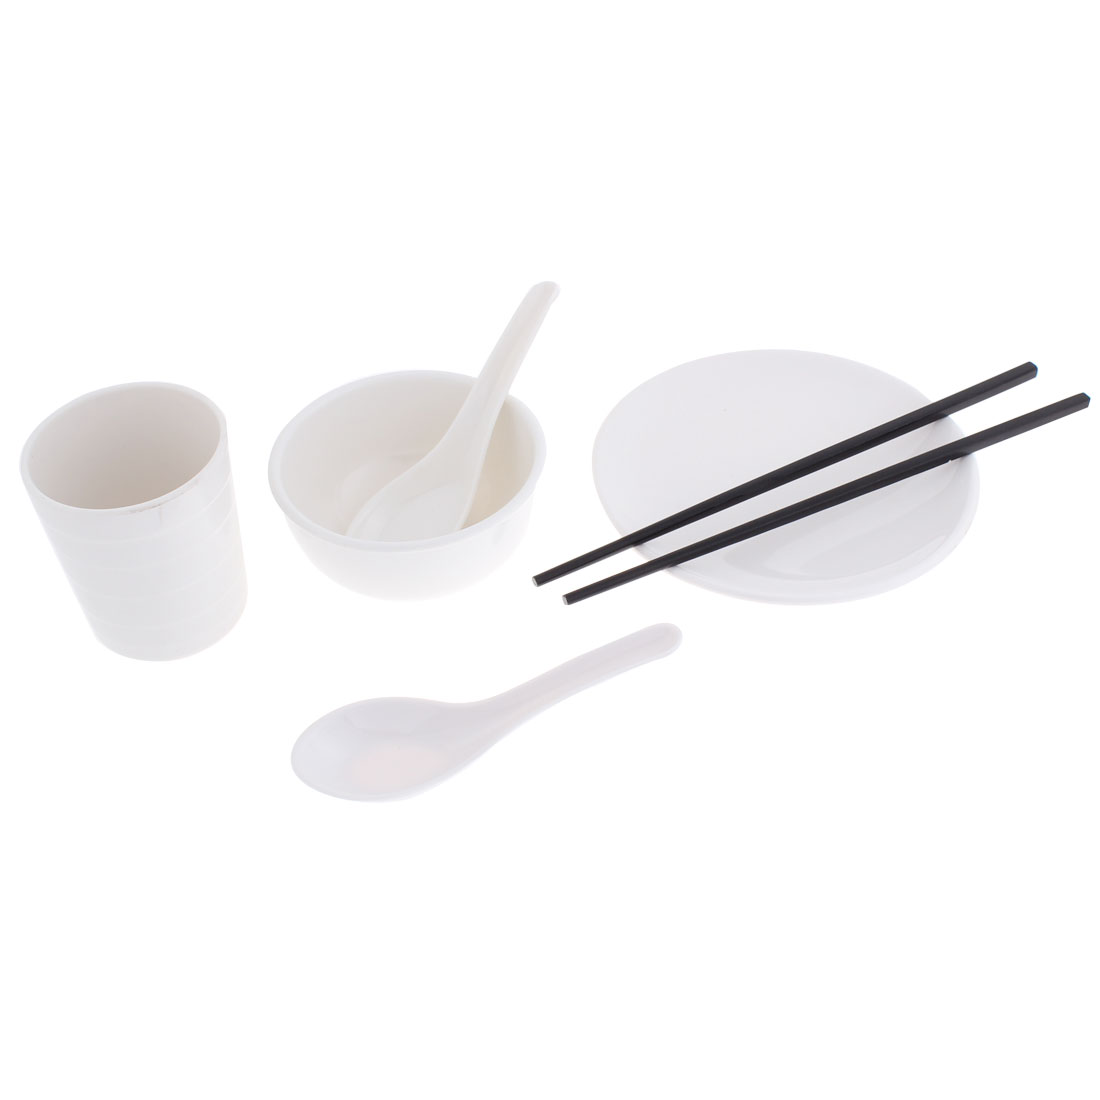 Restaurant Table Spoon Chopsticks Cup Dish Rice Bowl White 6 in 1